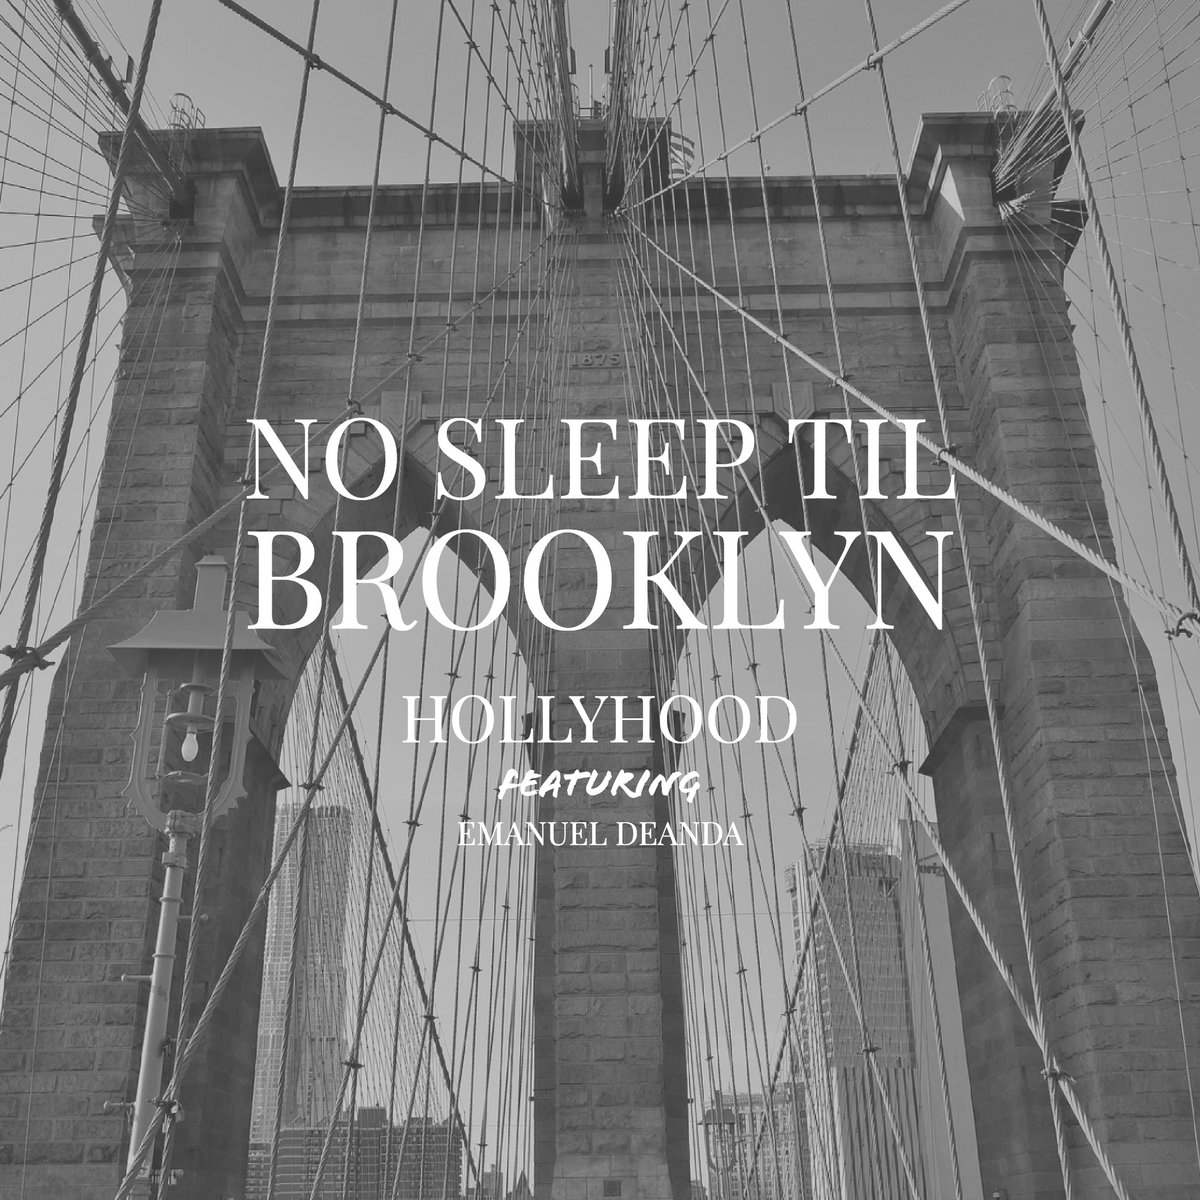 No Sleep 'Til Brooklyn by HollyHood featuring Emanuel DeAnda